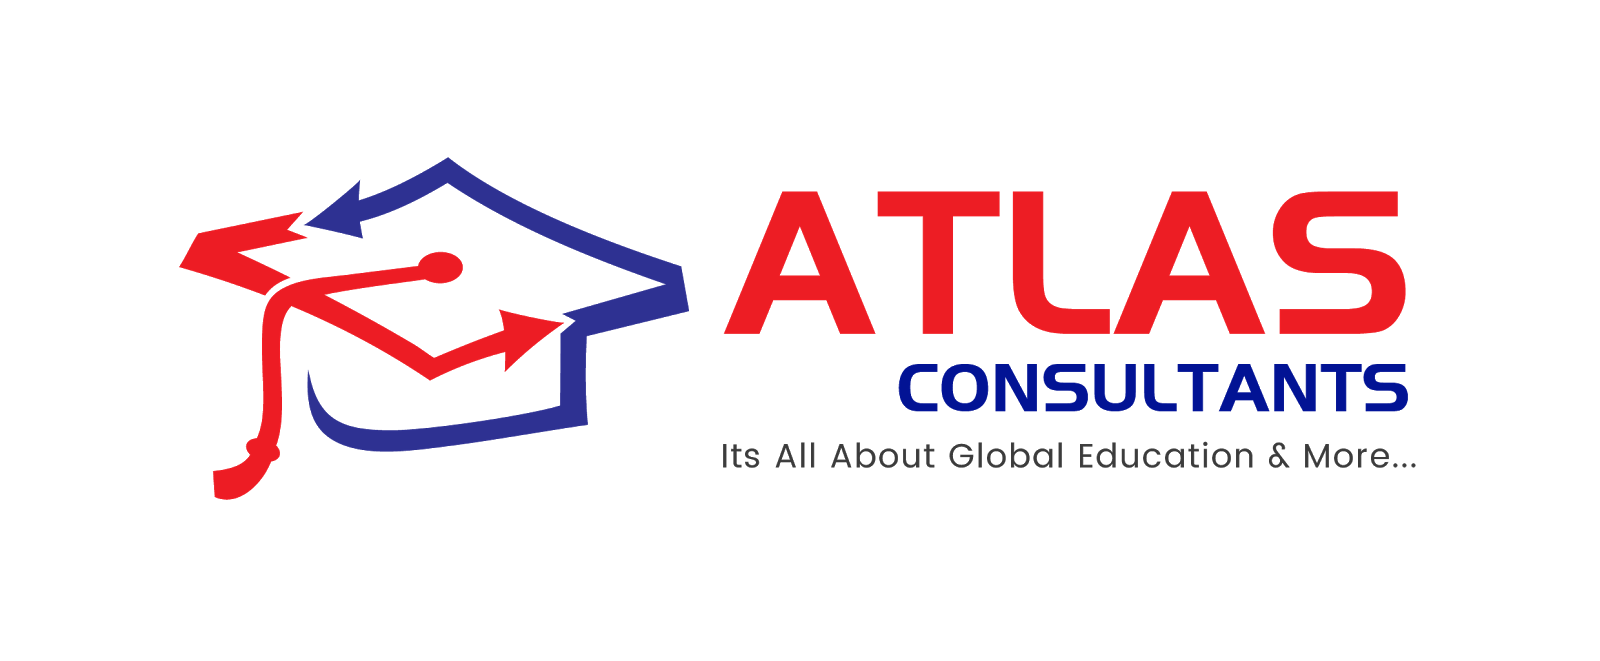 Atlas Consultants